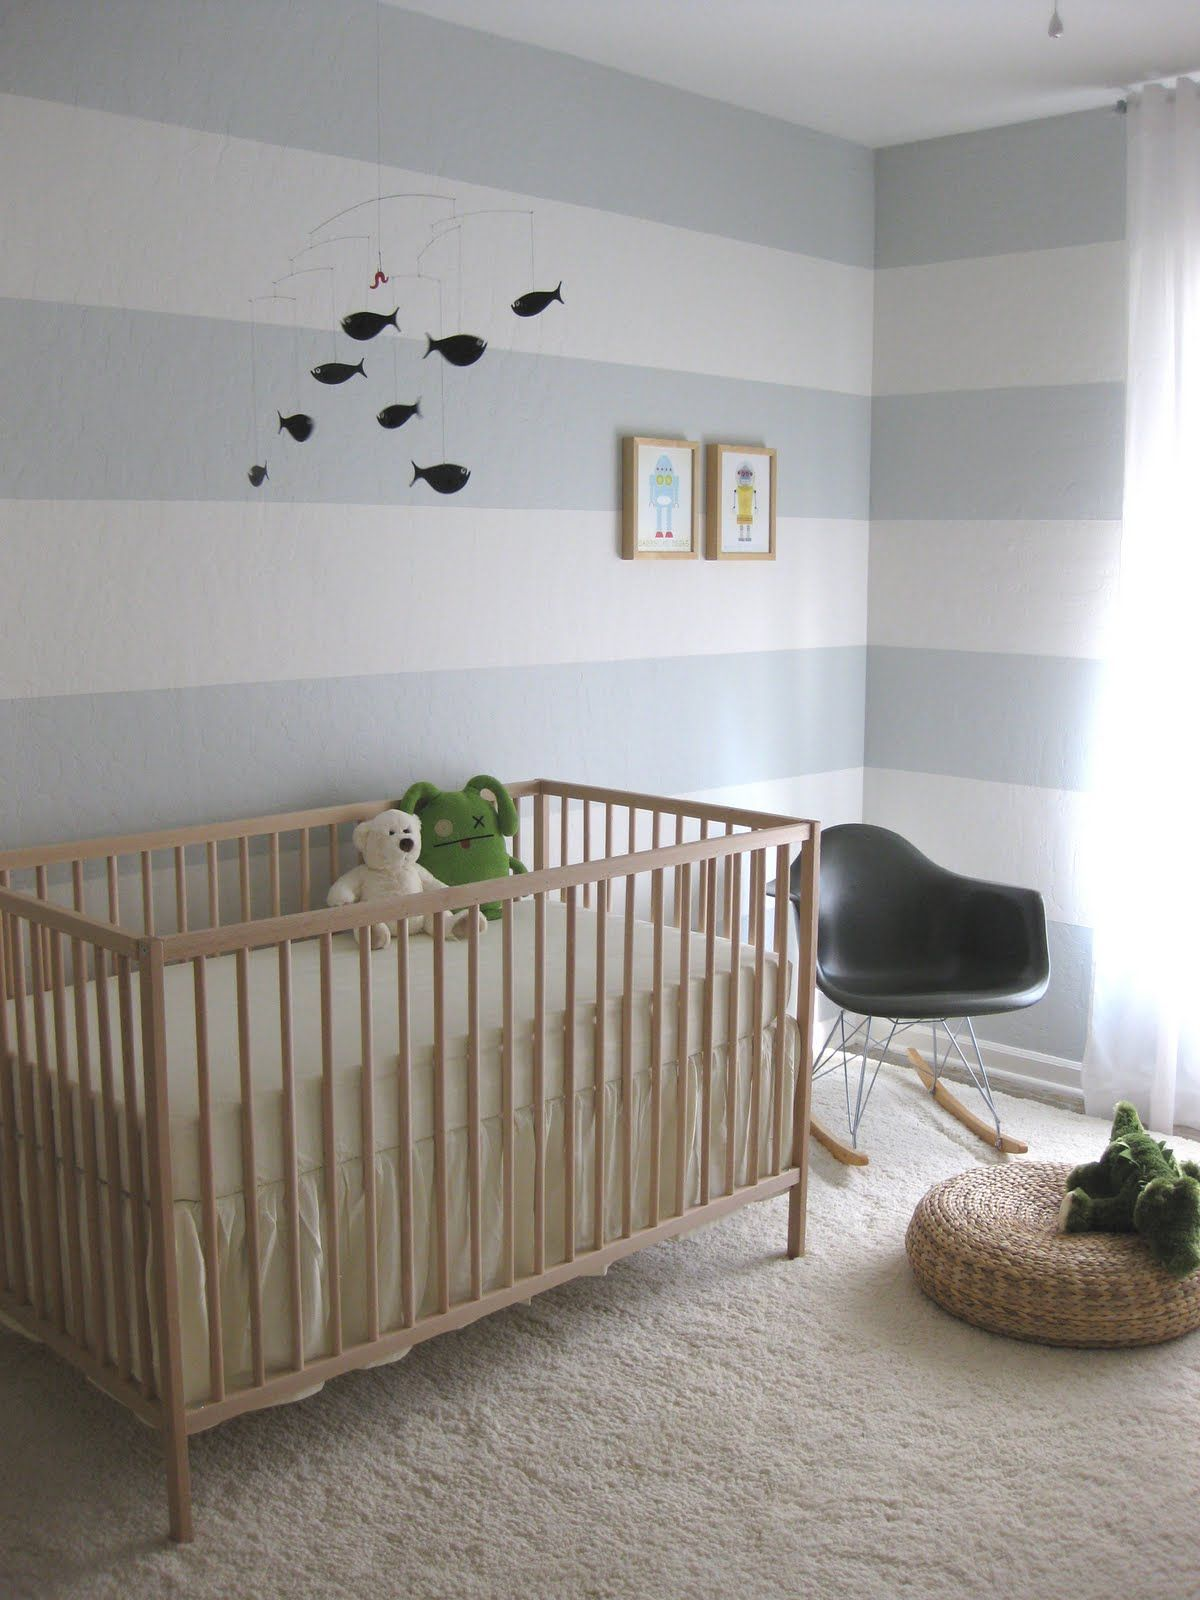 Modern ikea sniglar crib with flowy crib skirt | For the ...